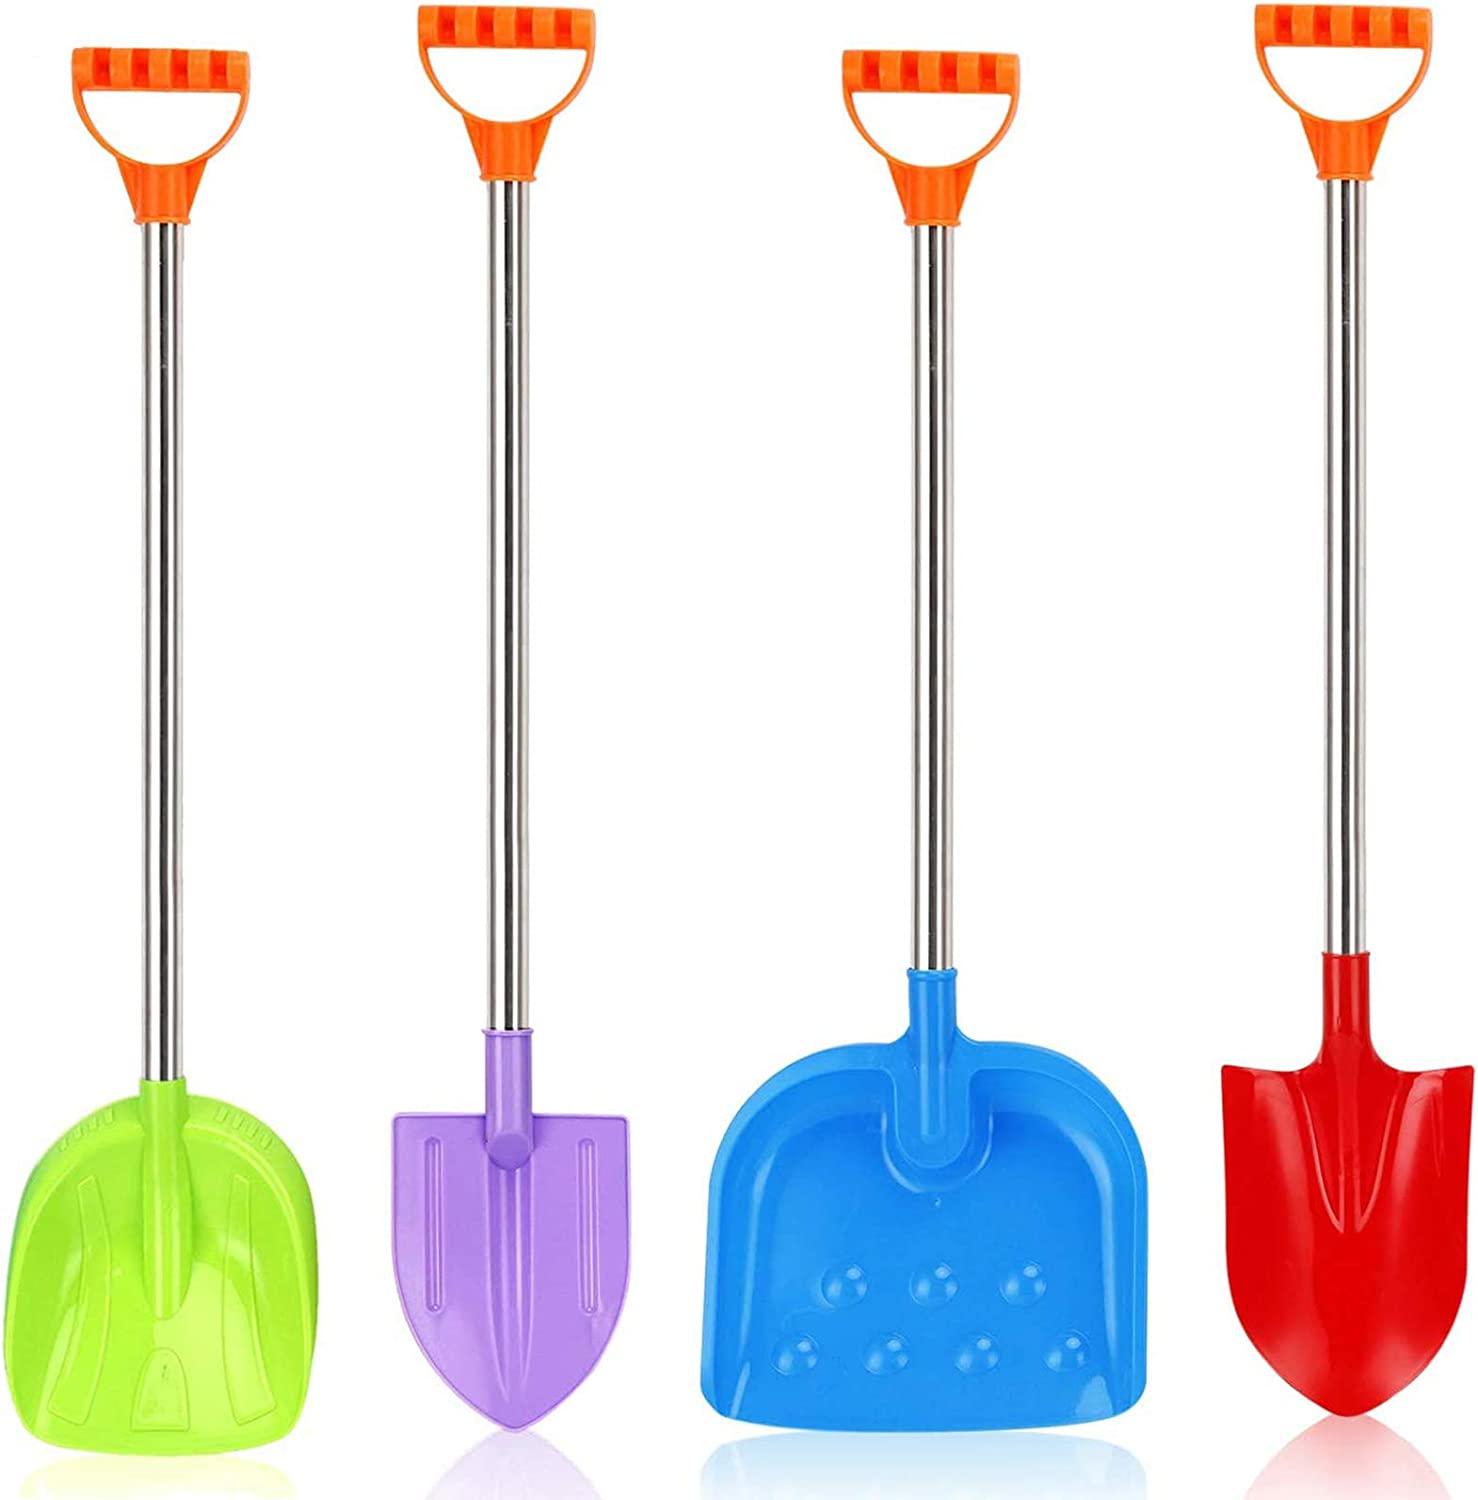 Beach Shovels Heavy Duty Kids Plastic Beach Shovel Tool Kit 25 Inch Sand Shovels for Kids Shovel Toys for Toddlers with Handle for Digging Sand Beach Fun Gift Twin Set Bundle 2 Pack